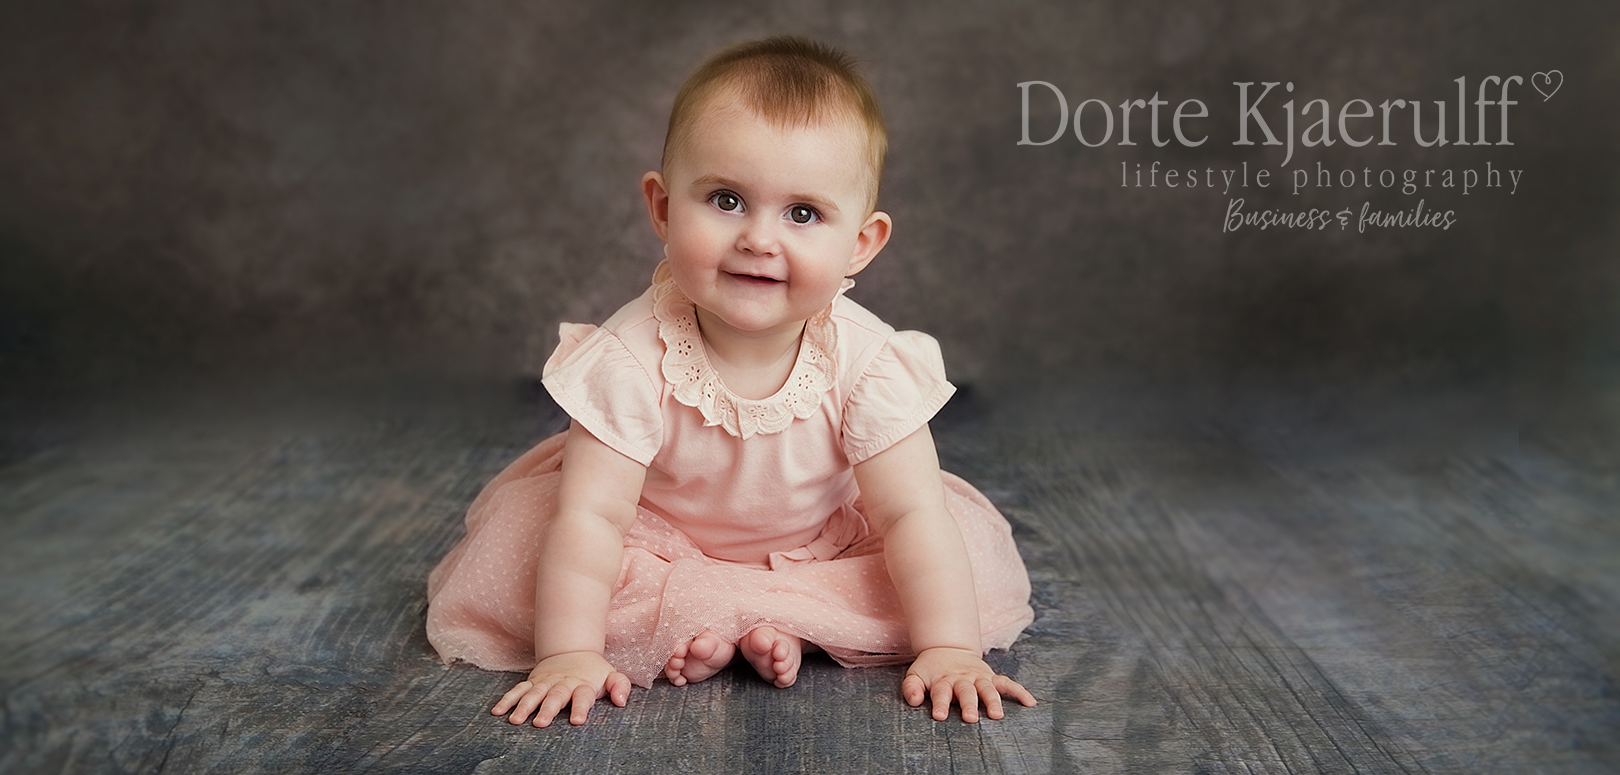 Baby photographer Market Harborough – featured shoot